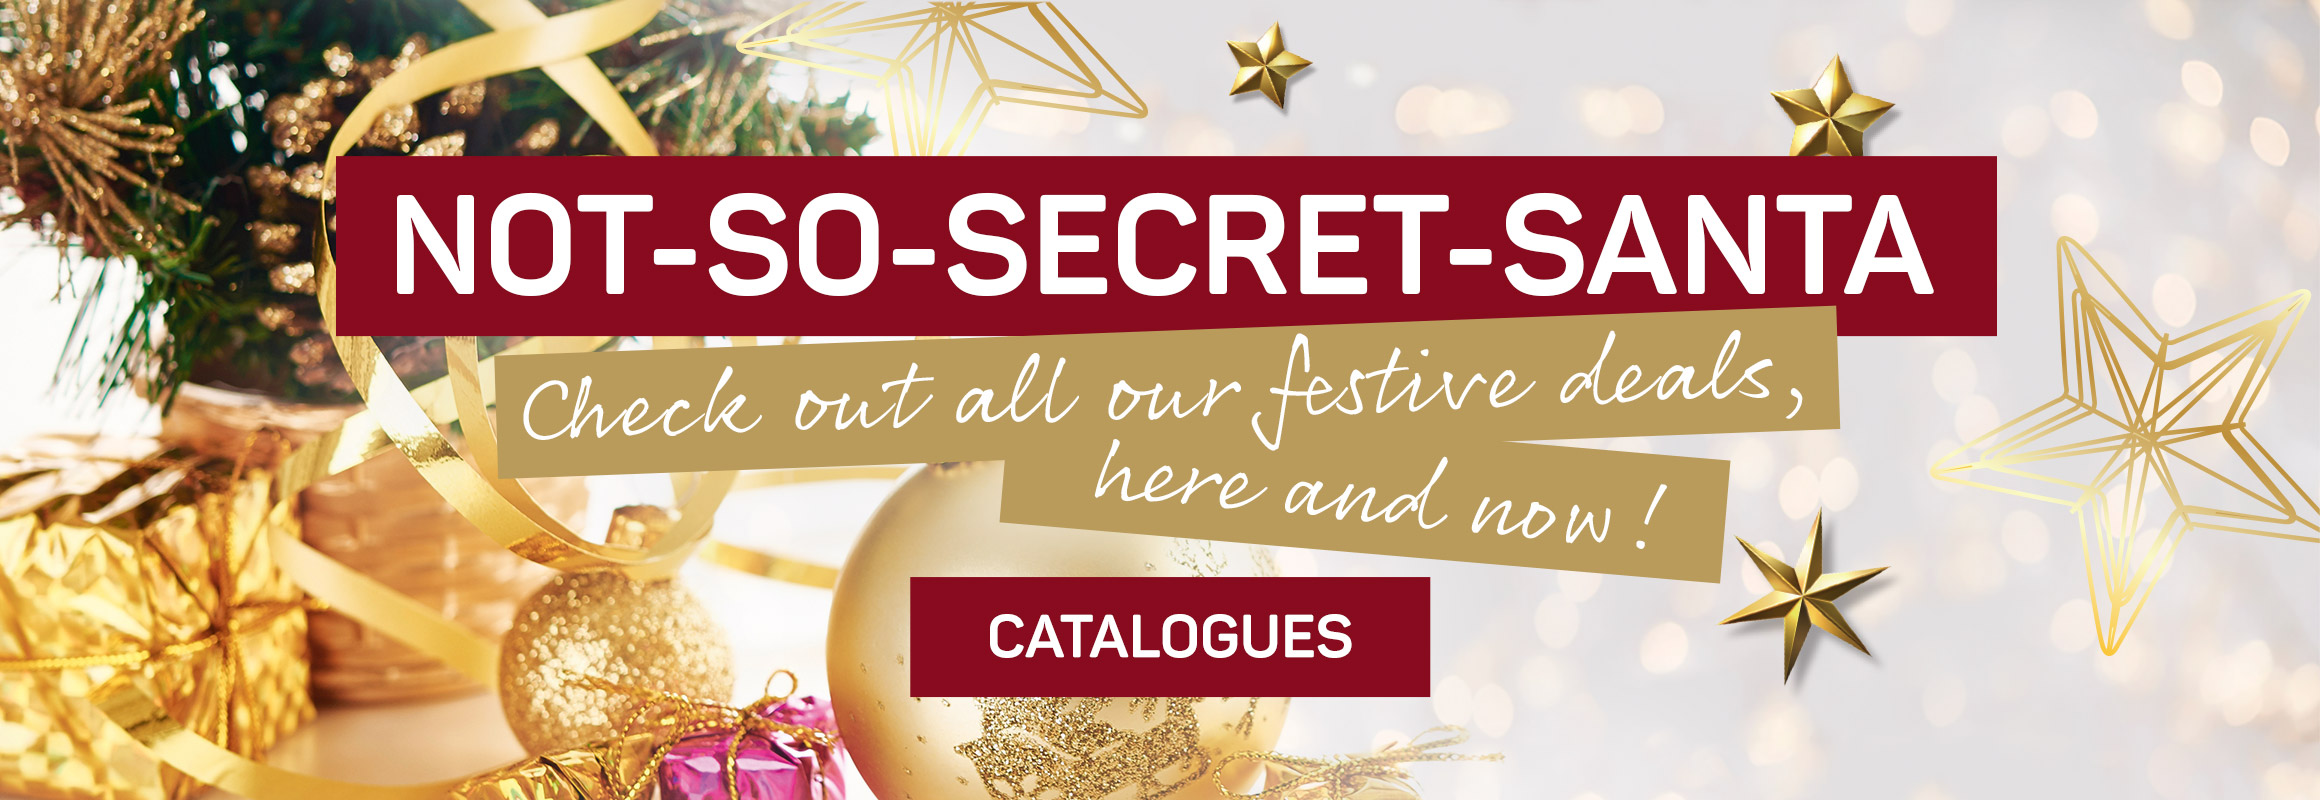 Not-so-secret-santa. Check out all our festive deals here and now